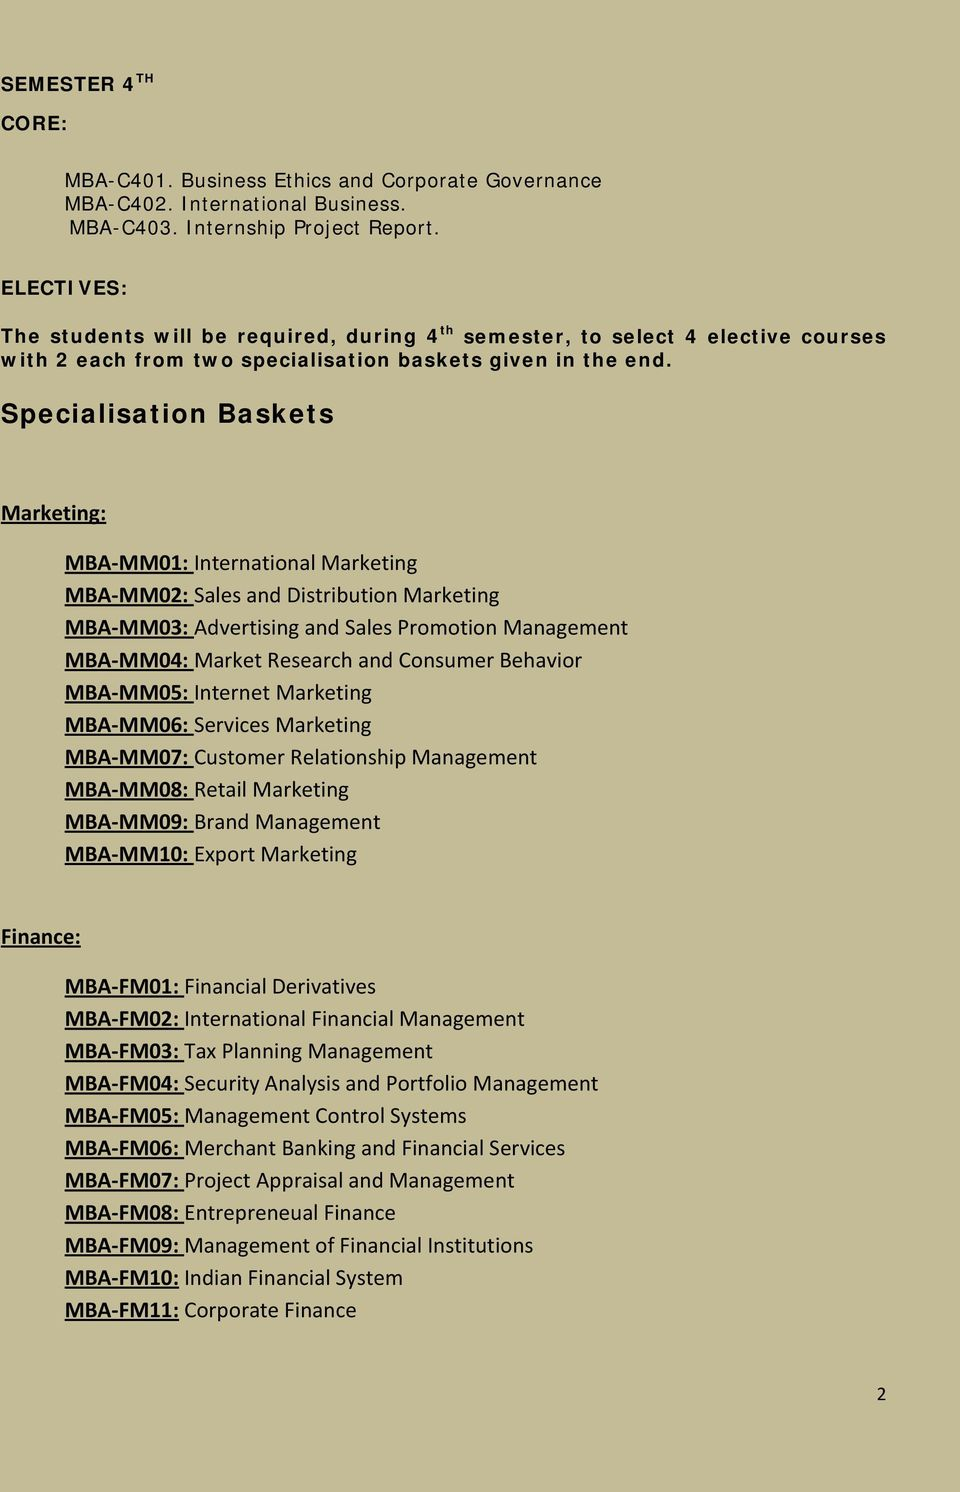 Specialisation Baskets Marketing: MBA-MM01: International Marketing MBA-MM02: Sales and Distribution Marketing MBA-MM03: Advertising and Sales Promotion Management MBA-MM04: Market Research and